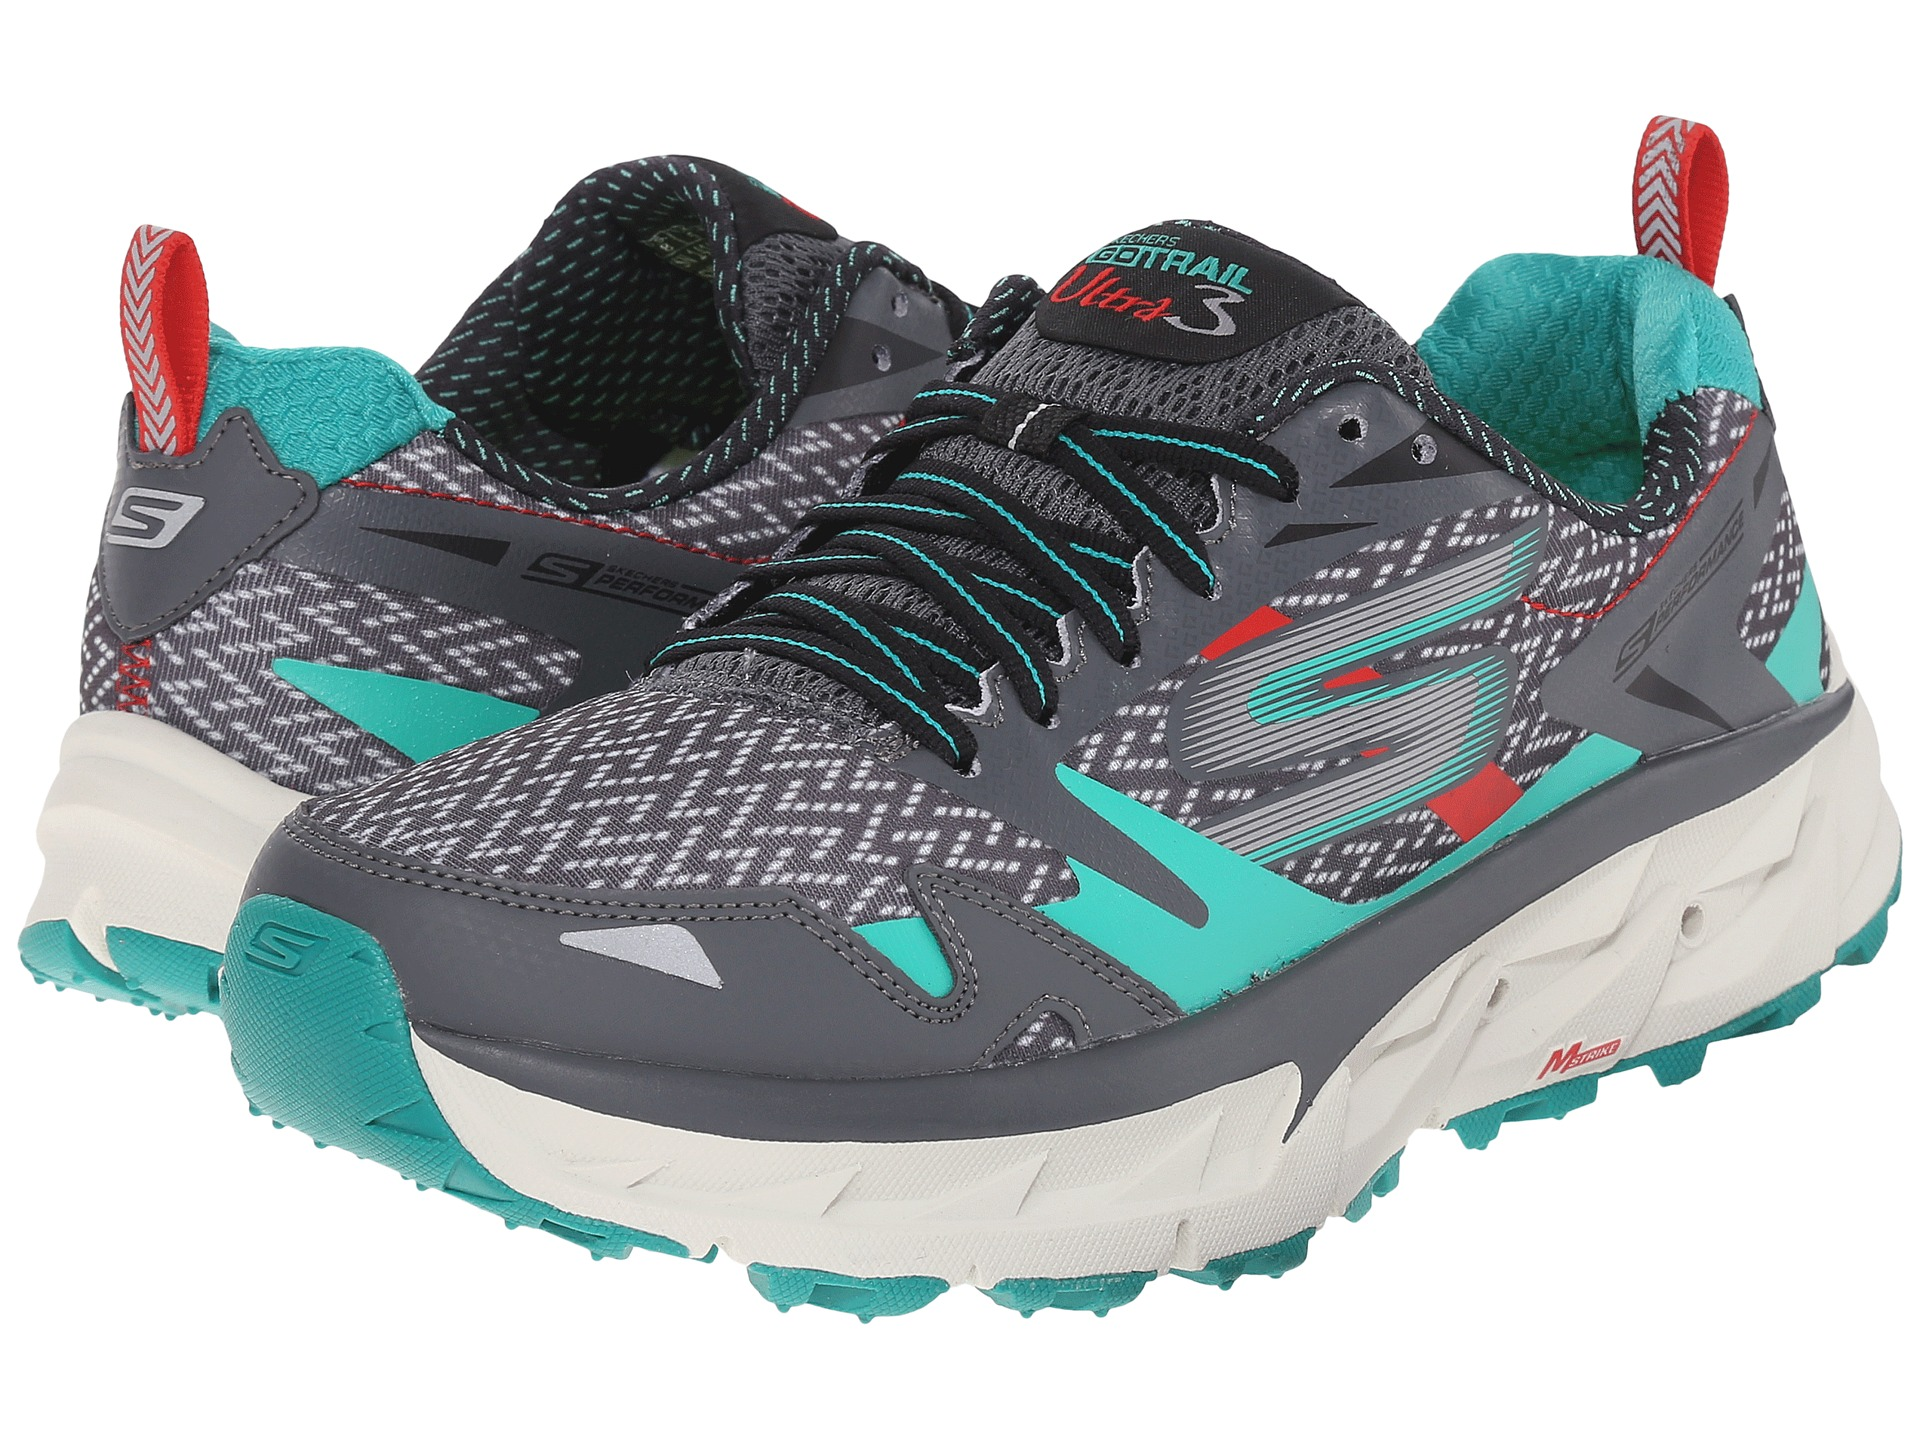 SKECHERS Go Ultra Trail 3 Charcoal/Teal - Zappos.com Free Shipping BOTH Ways